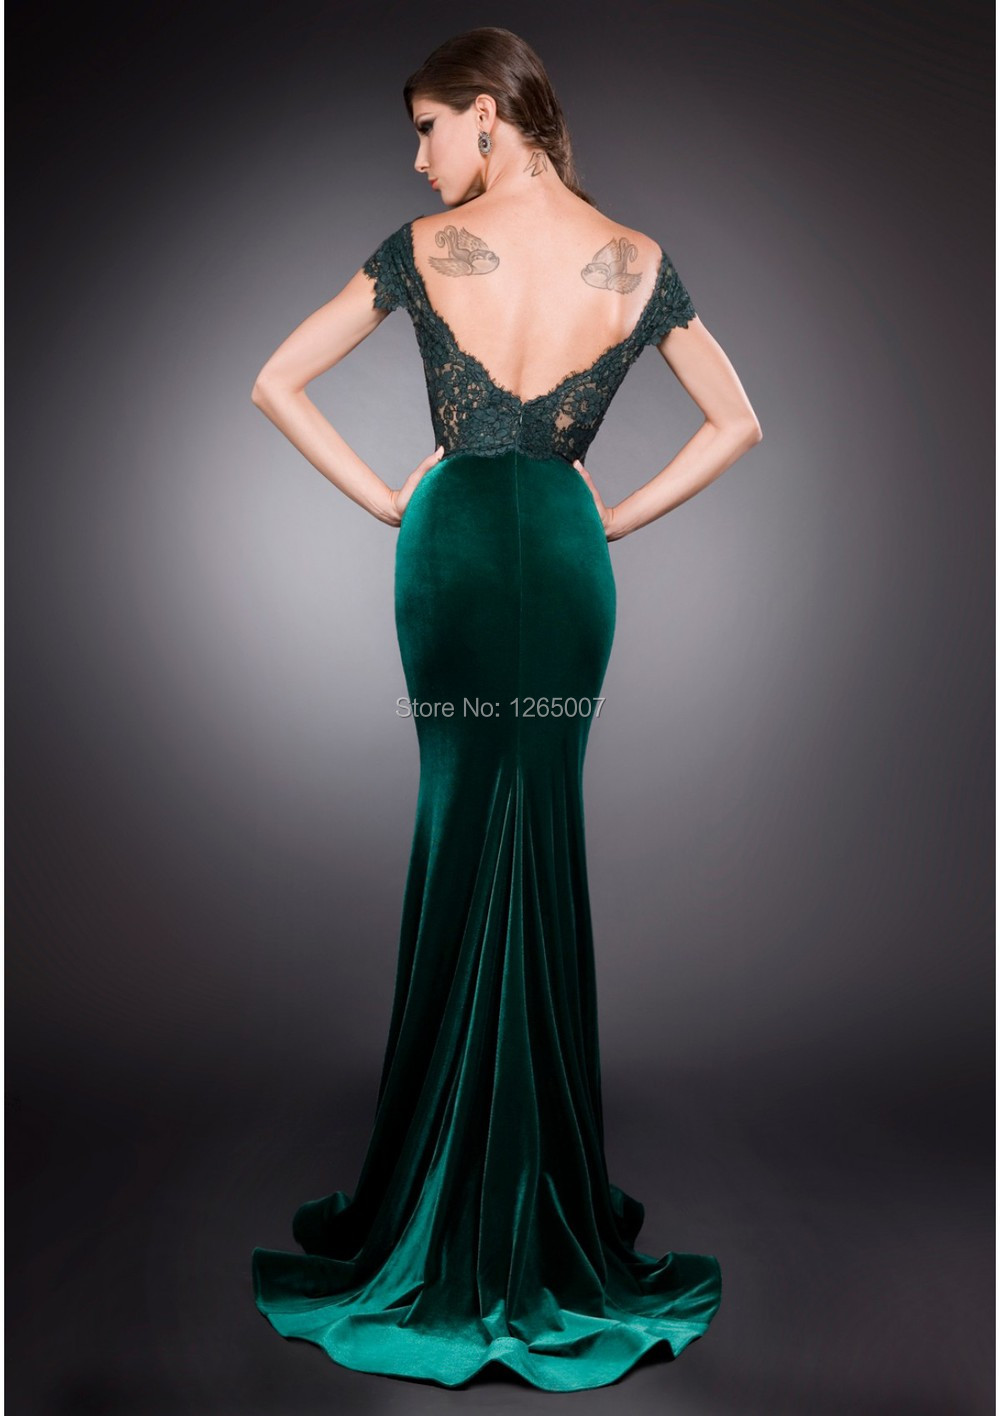 628f6148ab6 Forest Green Winter Formal Dress